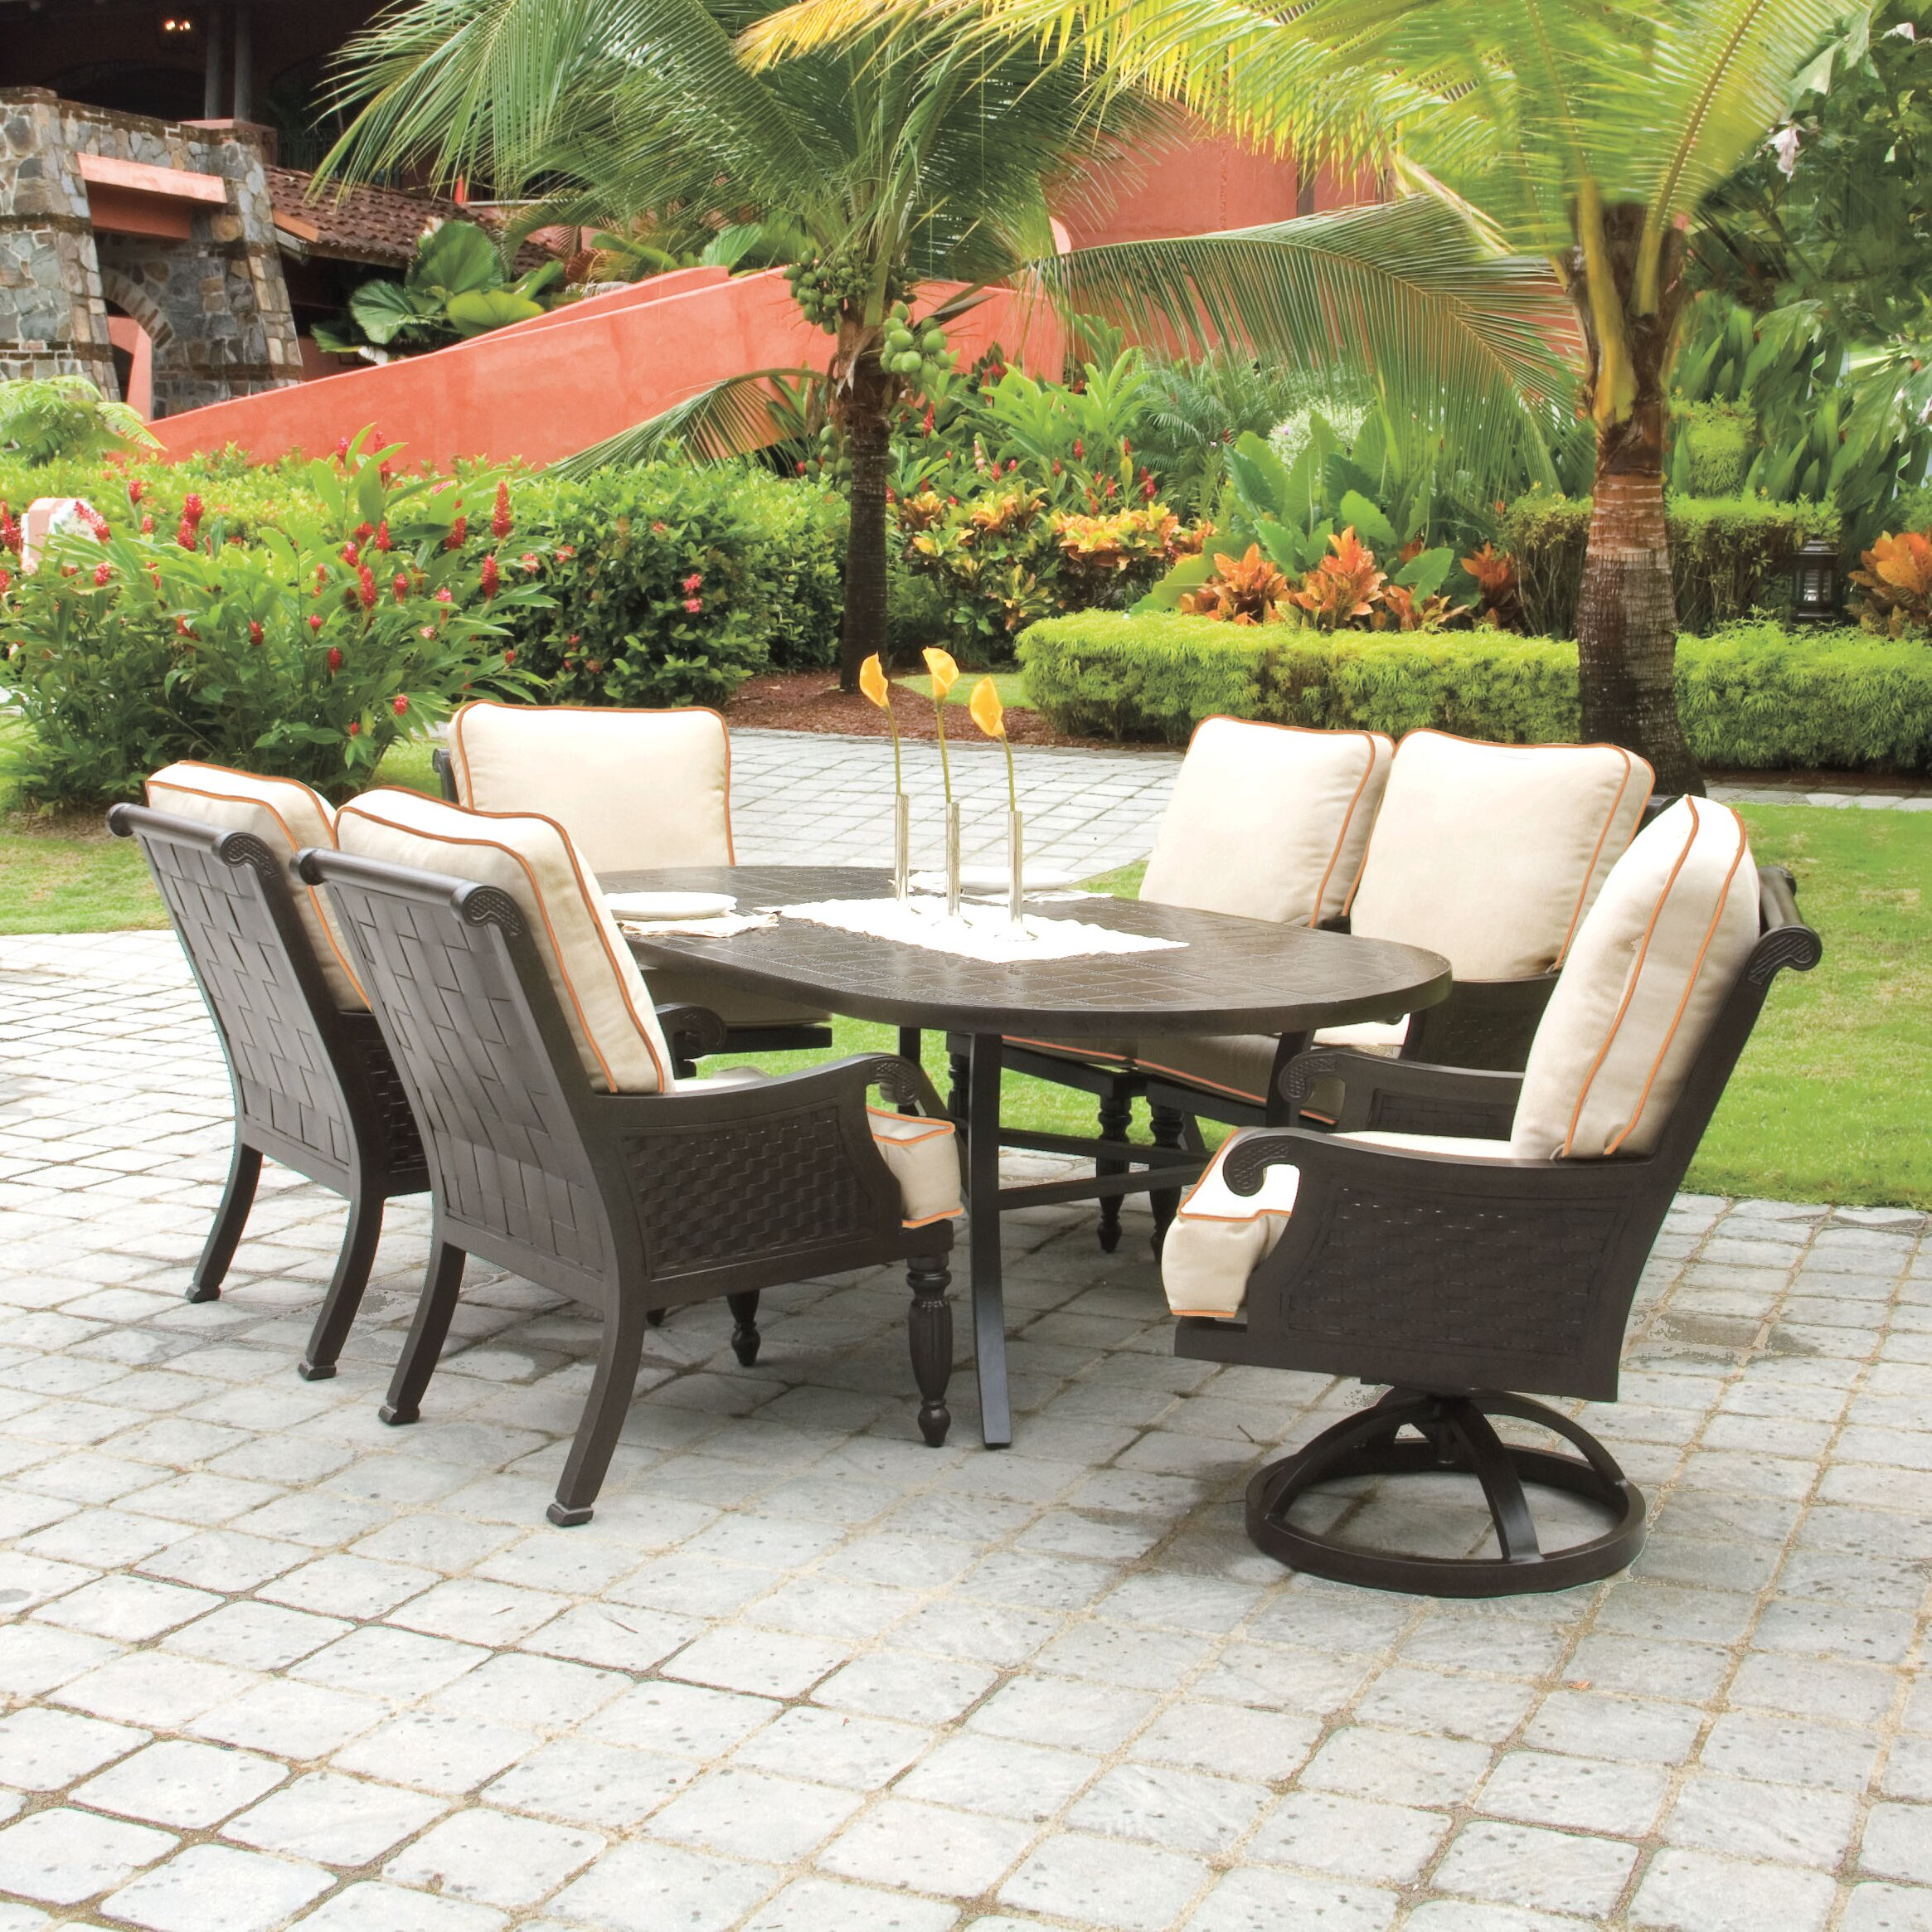 Pride family brands jakarta 7 piece dining set with for Outdoor furniture jakarta